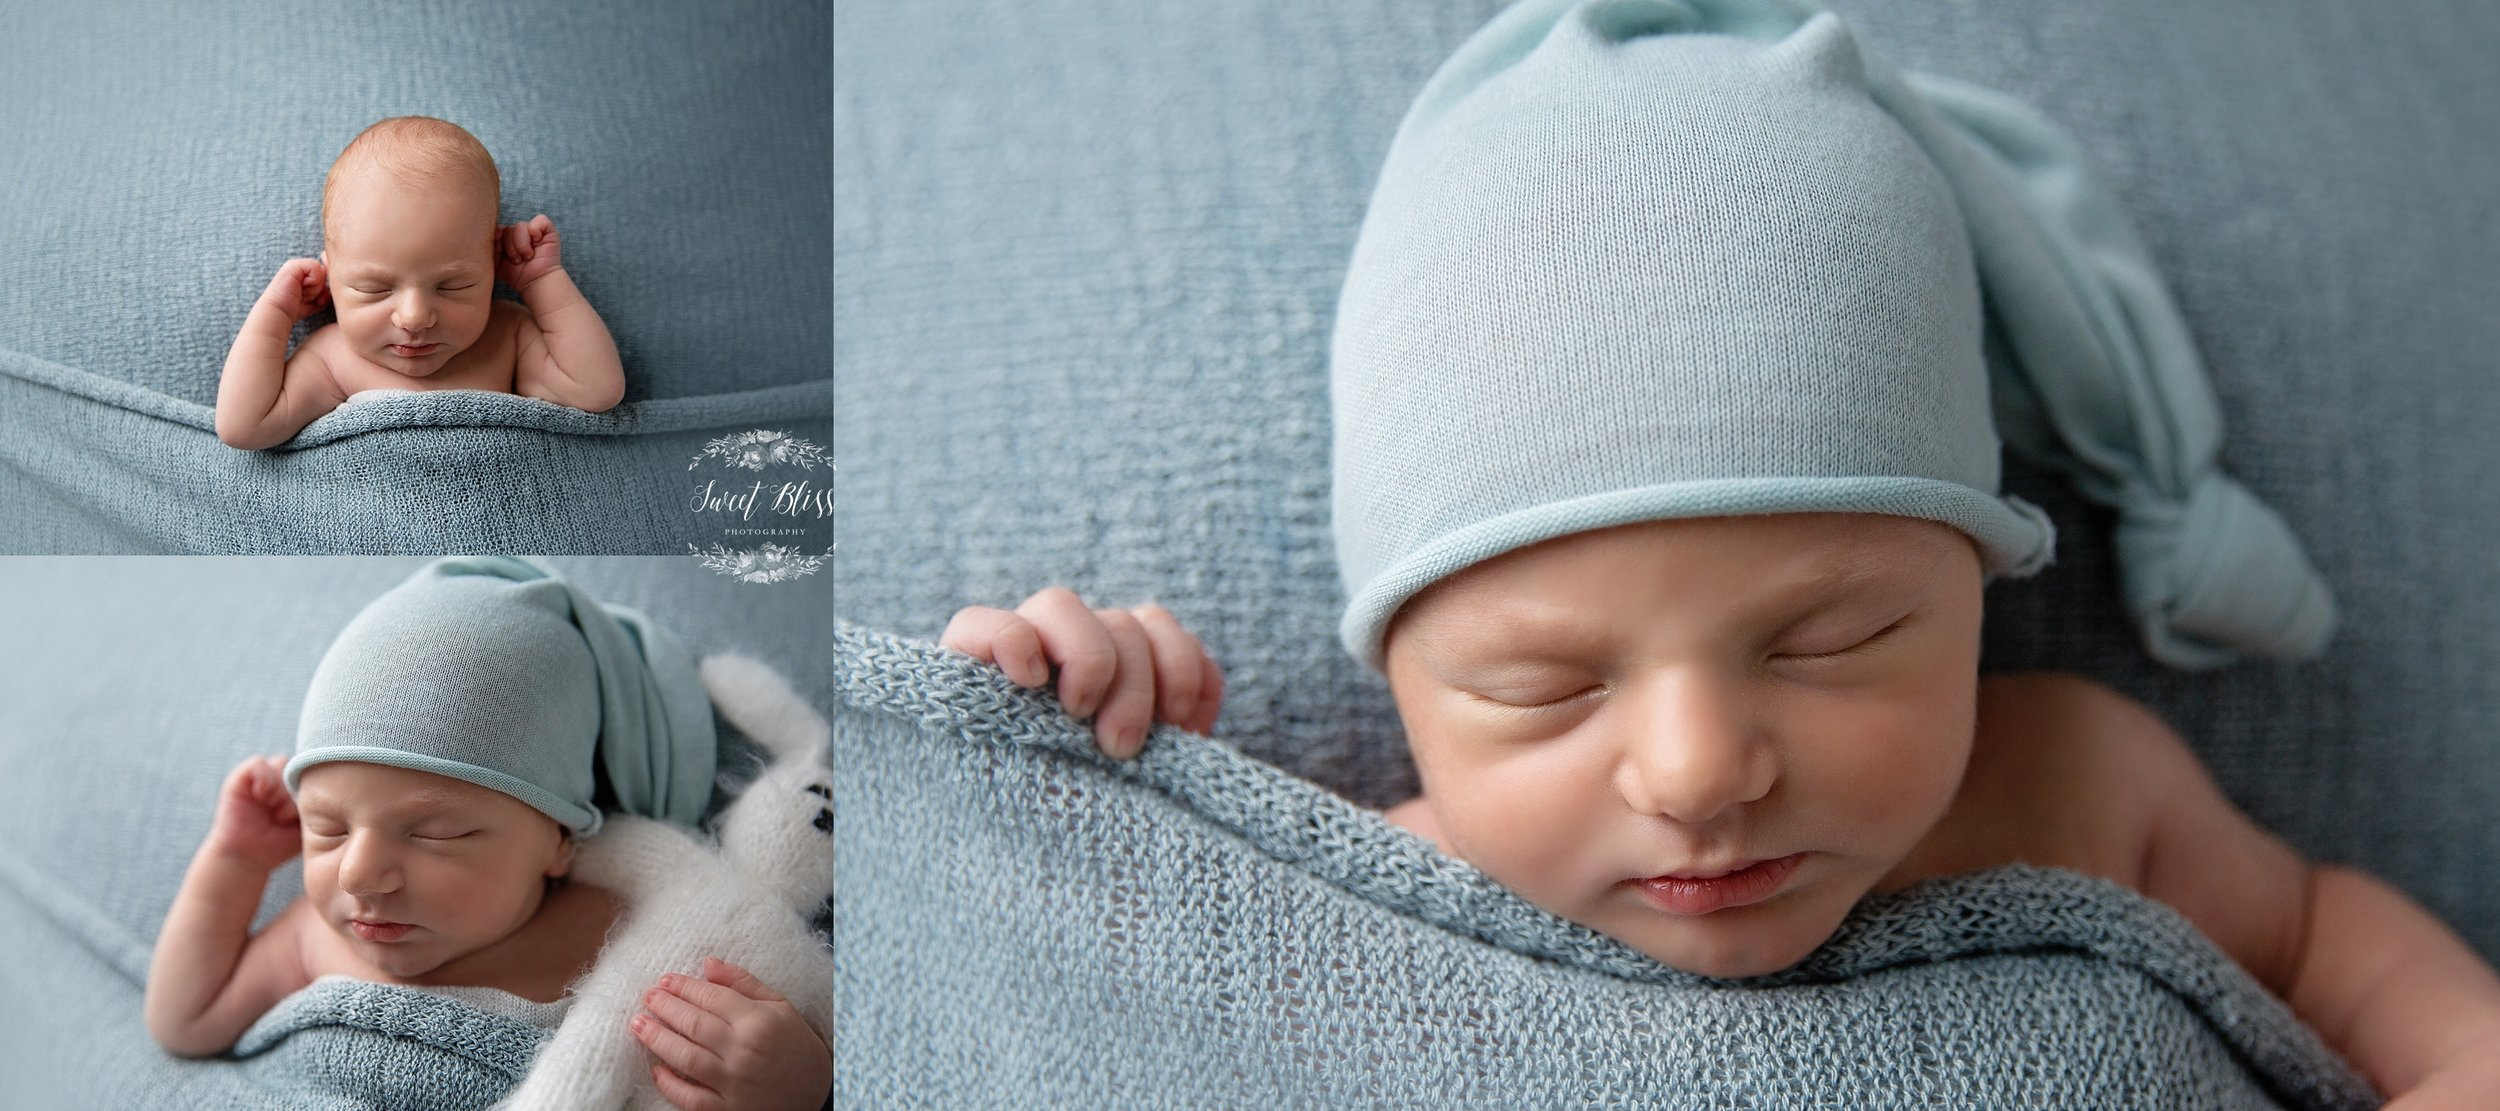 baltimorenewborn_sweetblissphoto_blueblanket2.jpg